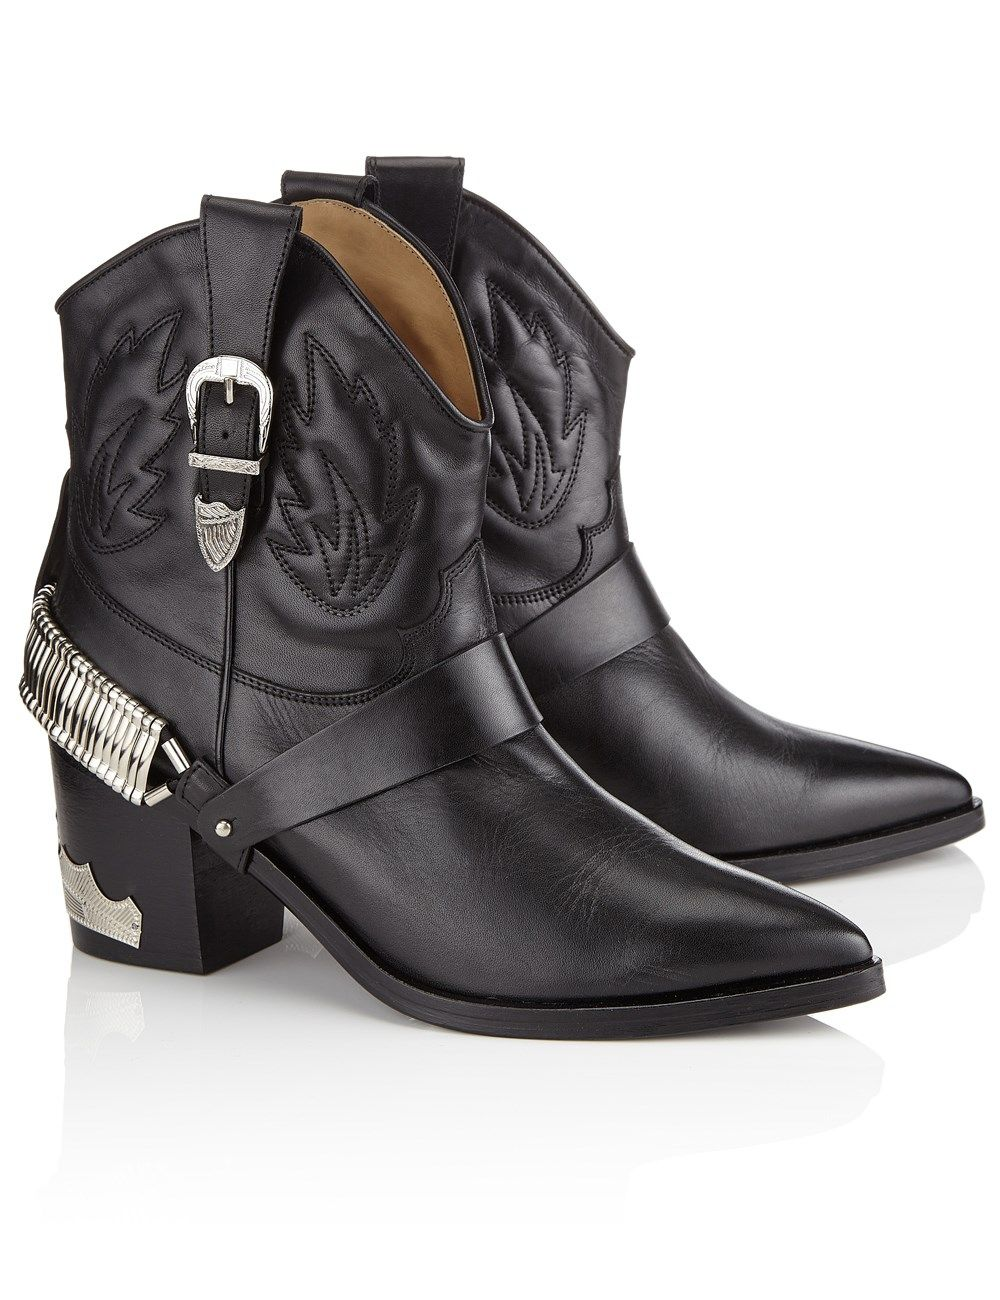 Chaussures - Bottes Archives Toge hk29h